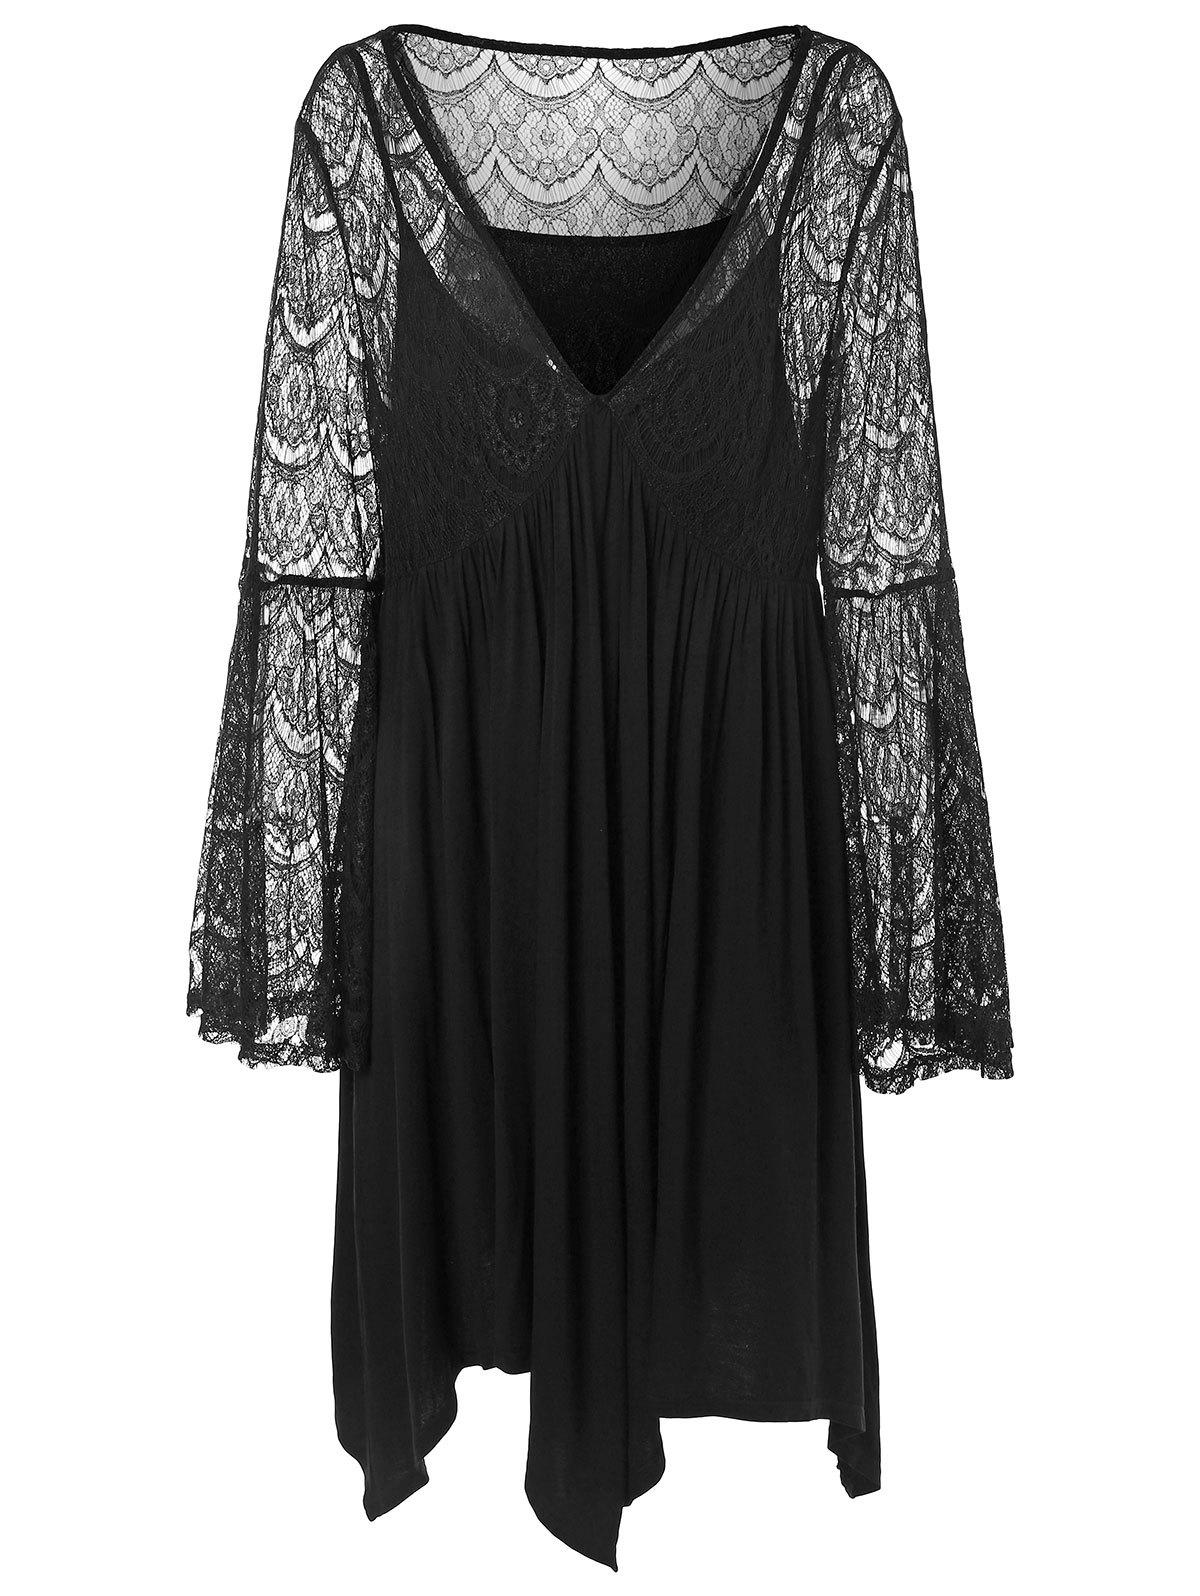 3f2c917d1d8 31% OFF   2019 Plus Size Plunge Flare Sleeve Lace Panel Dress ...